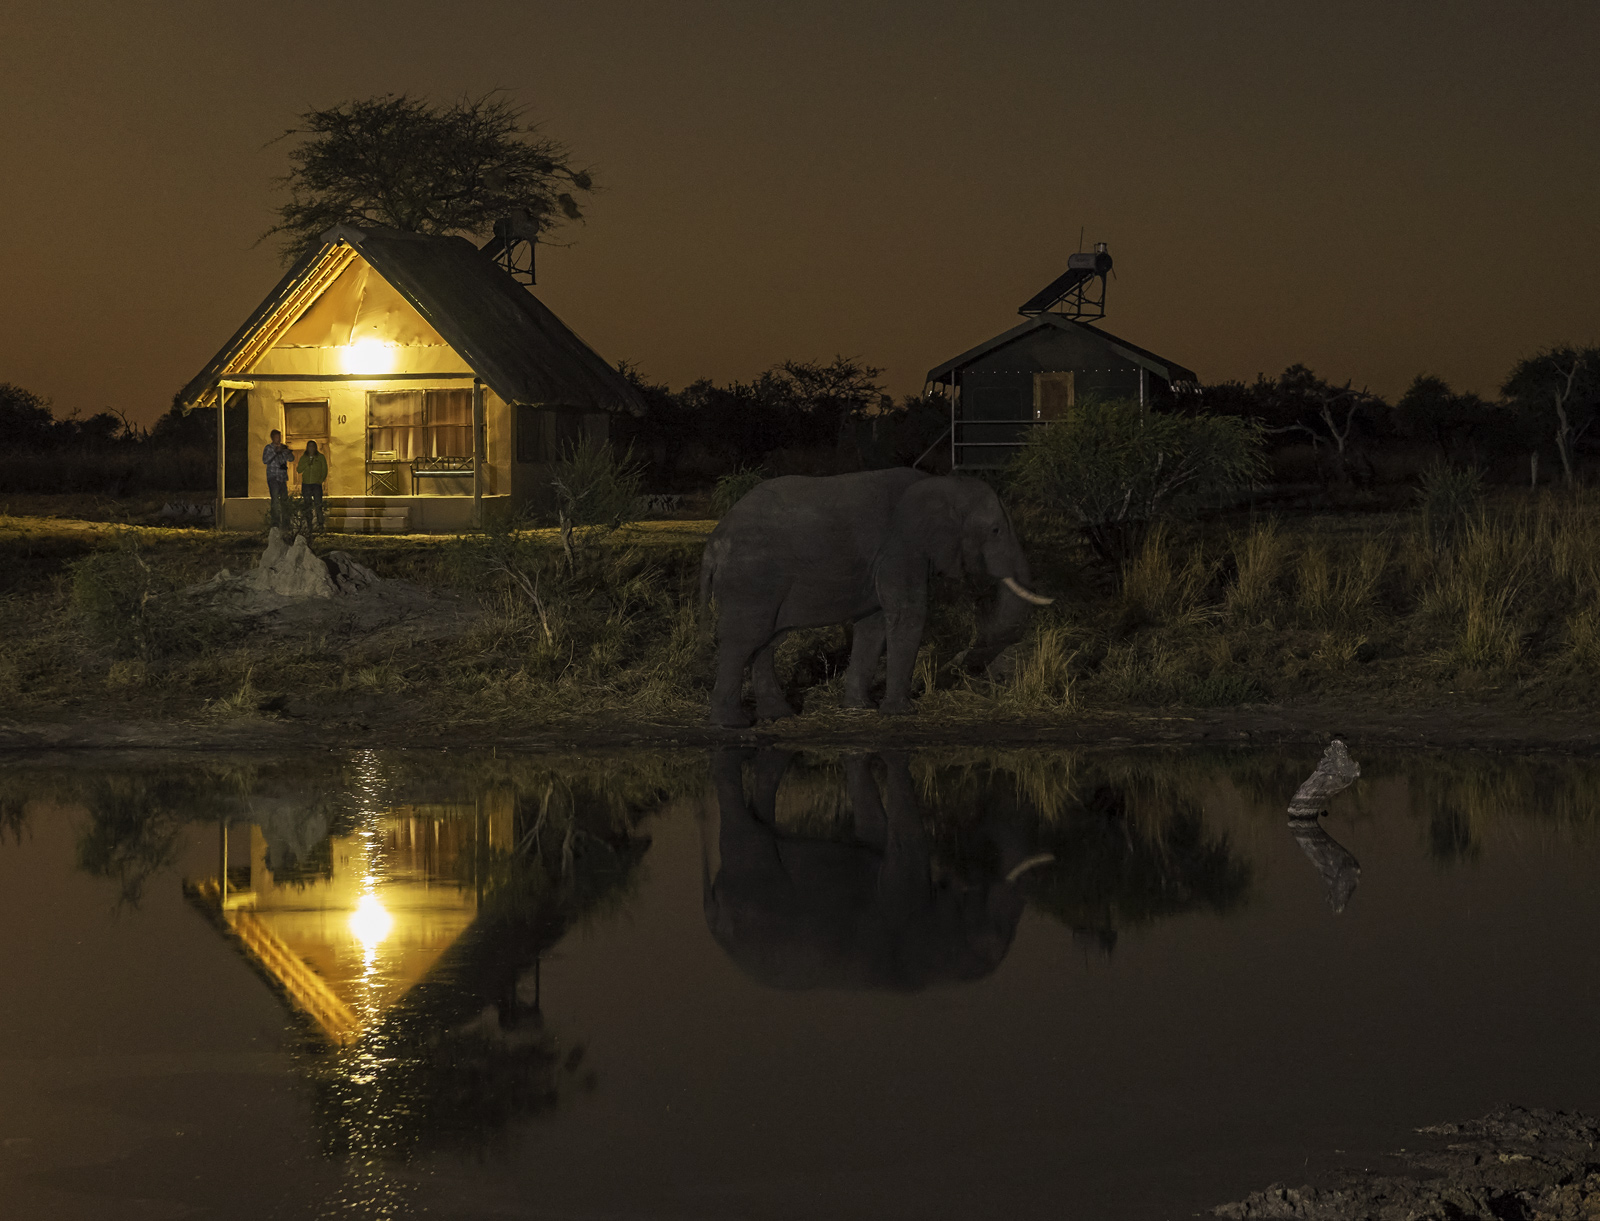 Night Visitor, Elephant Sands, Botswana, Africa, exceptional, evening, lodges, perimeter, porch, elephants, young couple, photo